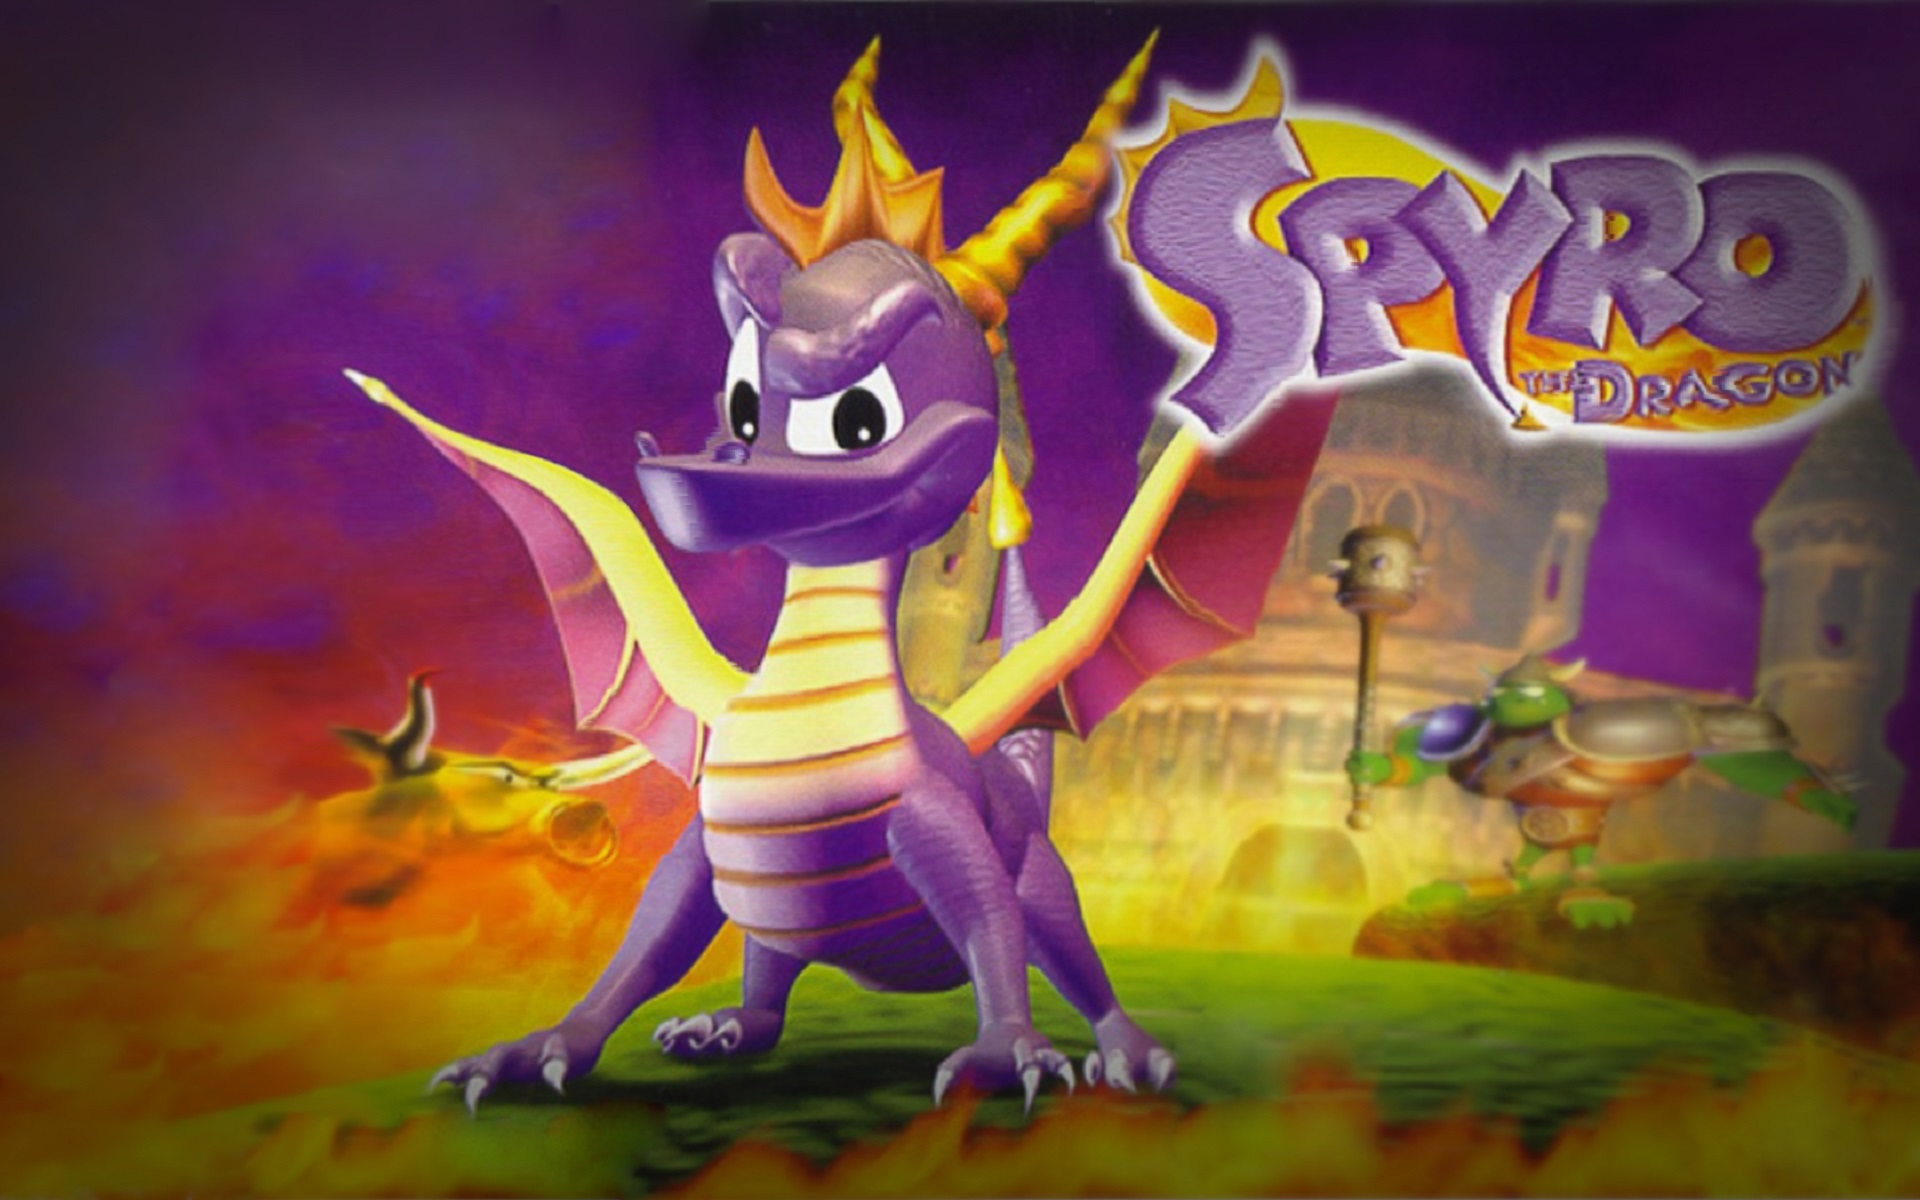 Spyro the Dragon, Universal